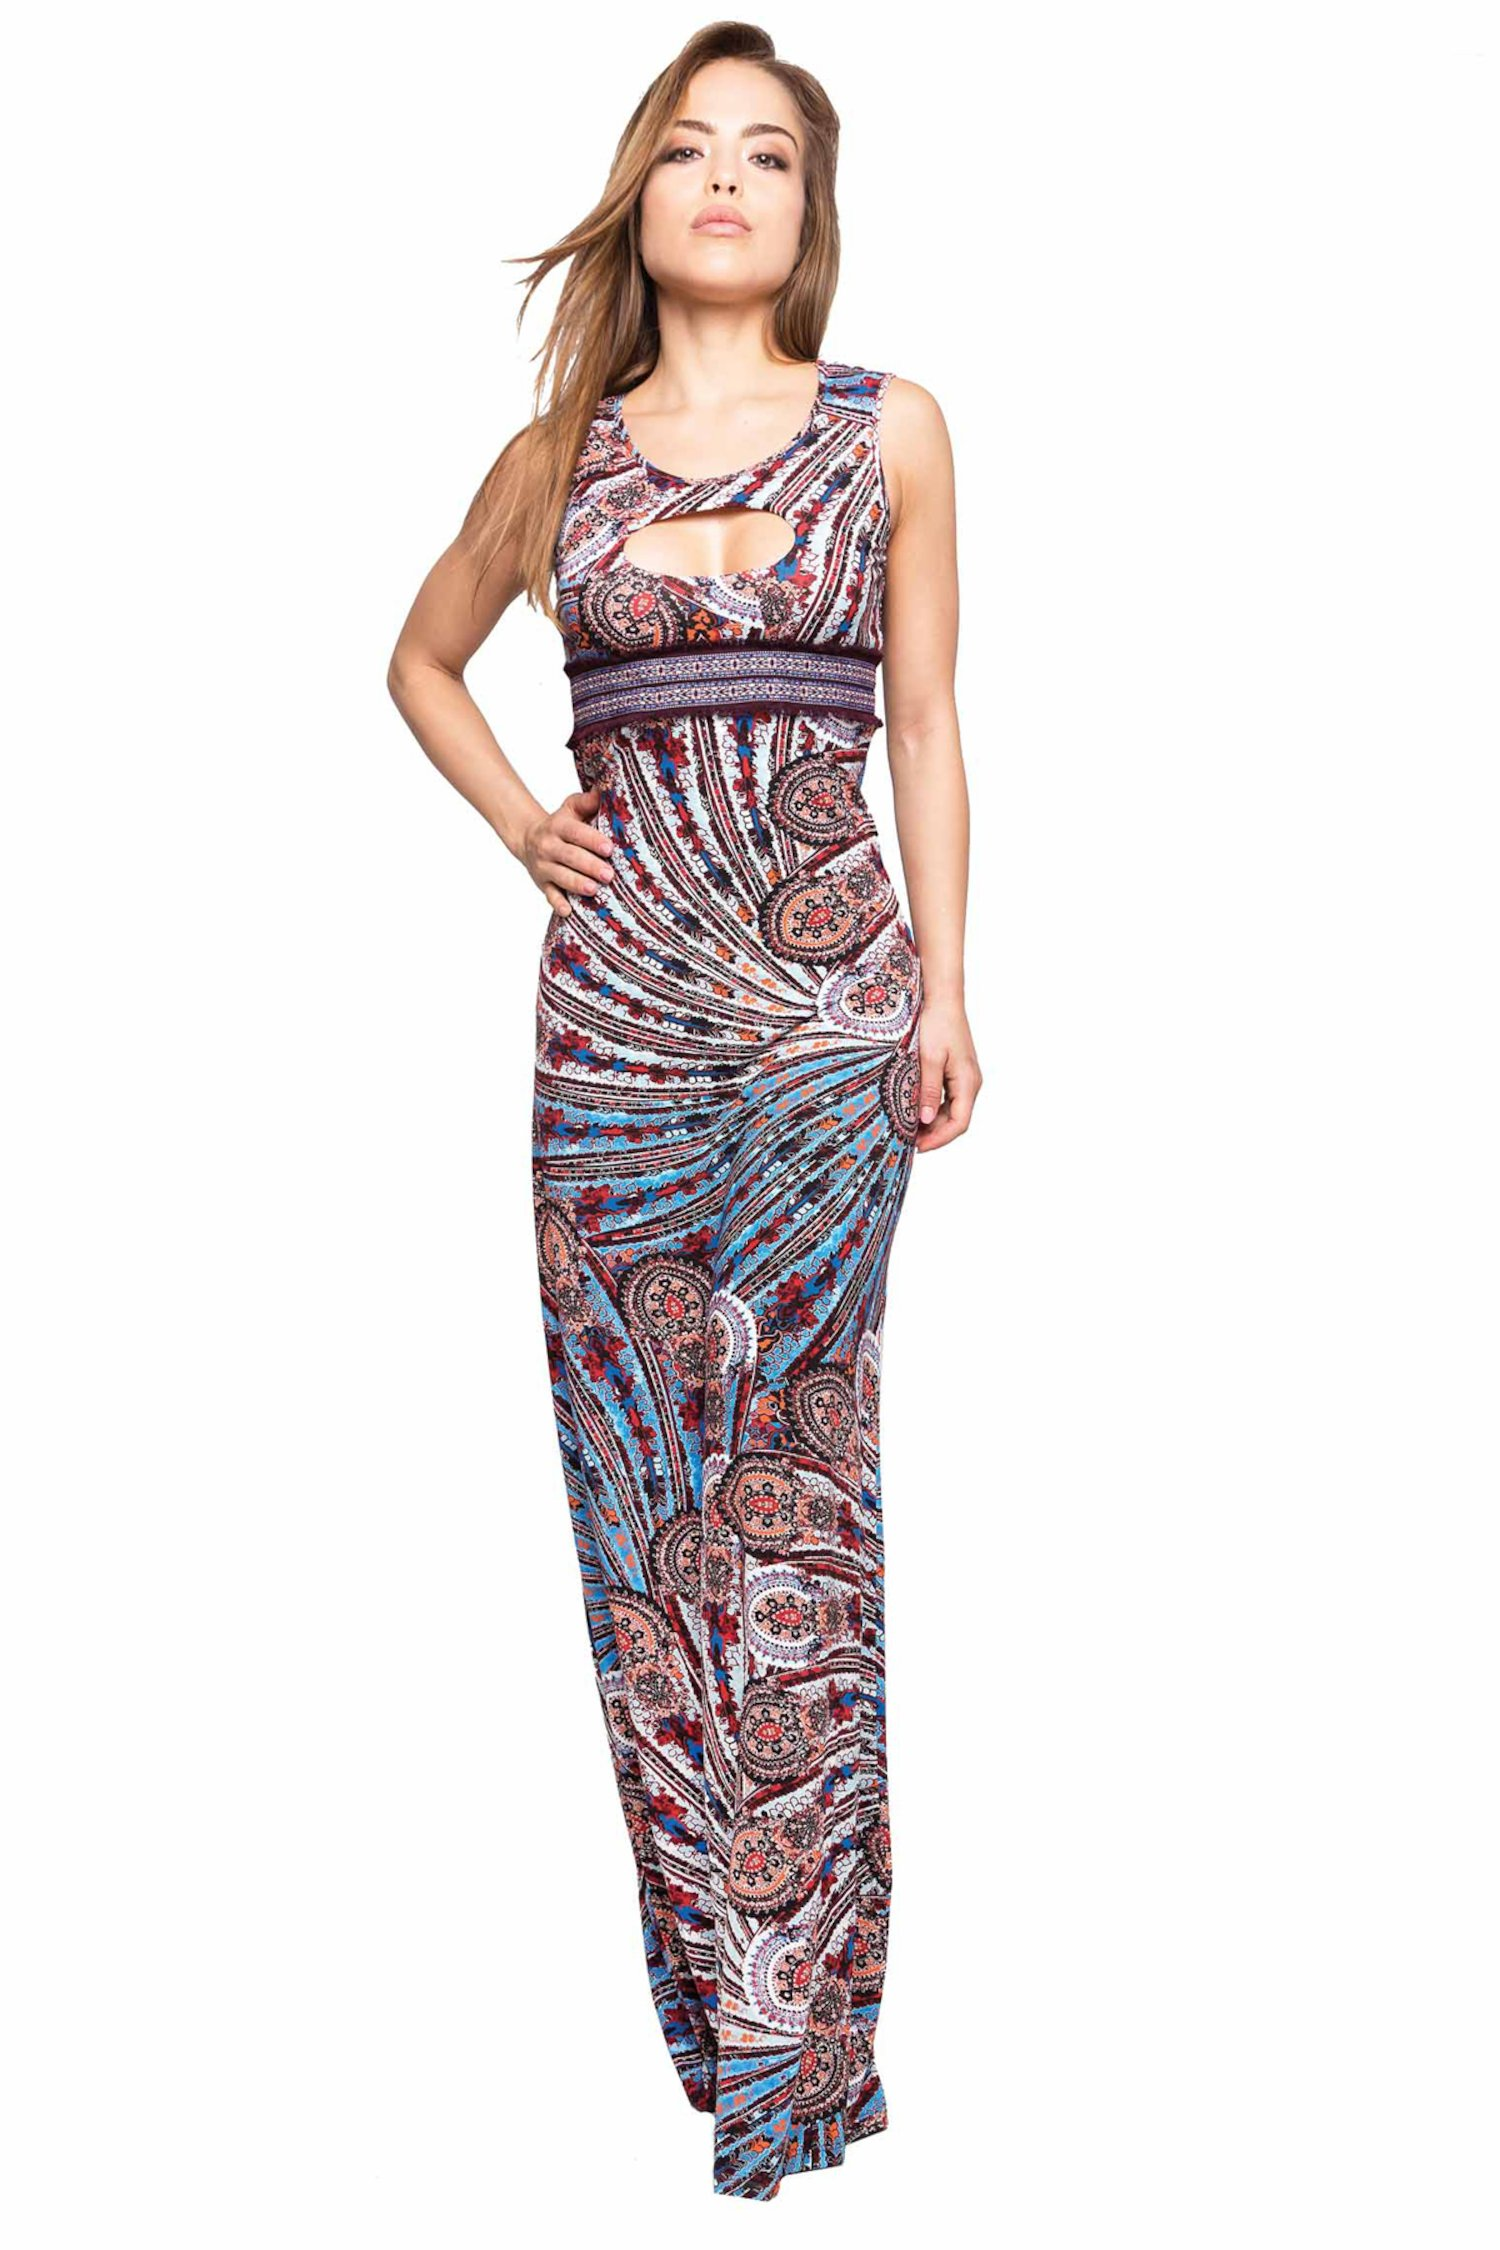 LONG DRESS EMBROIDERY THREAD AND CASHMERE - Cachemire Celeste